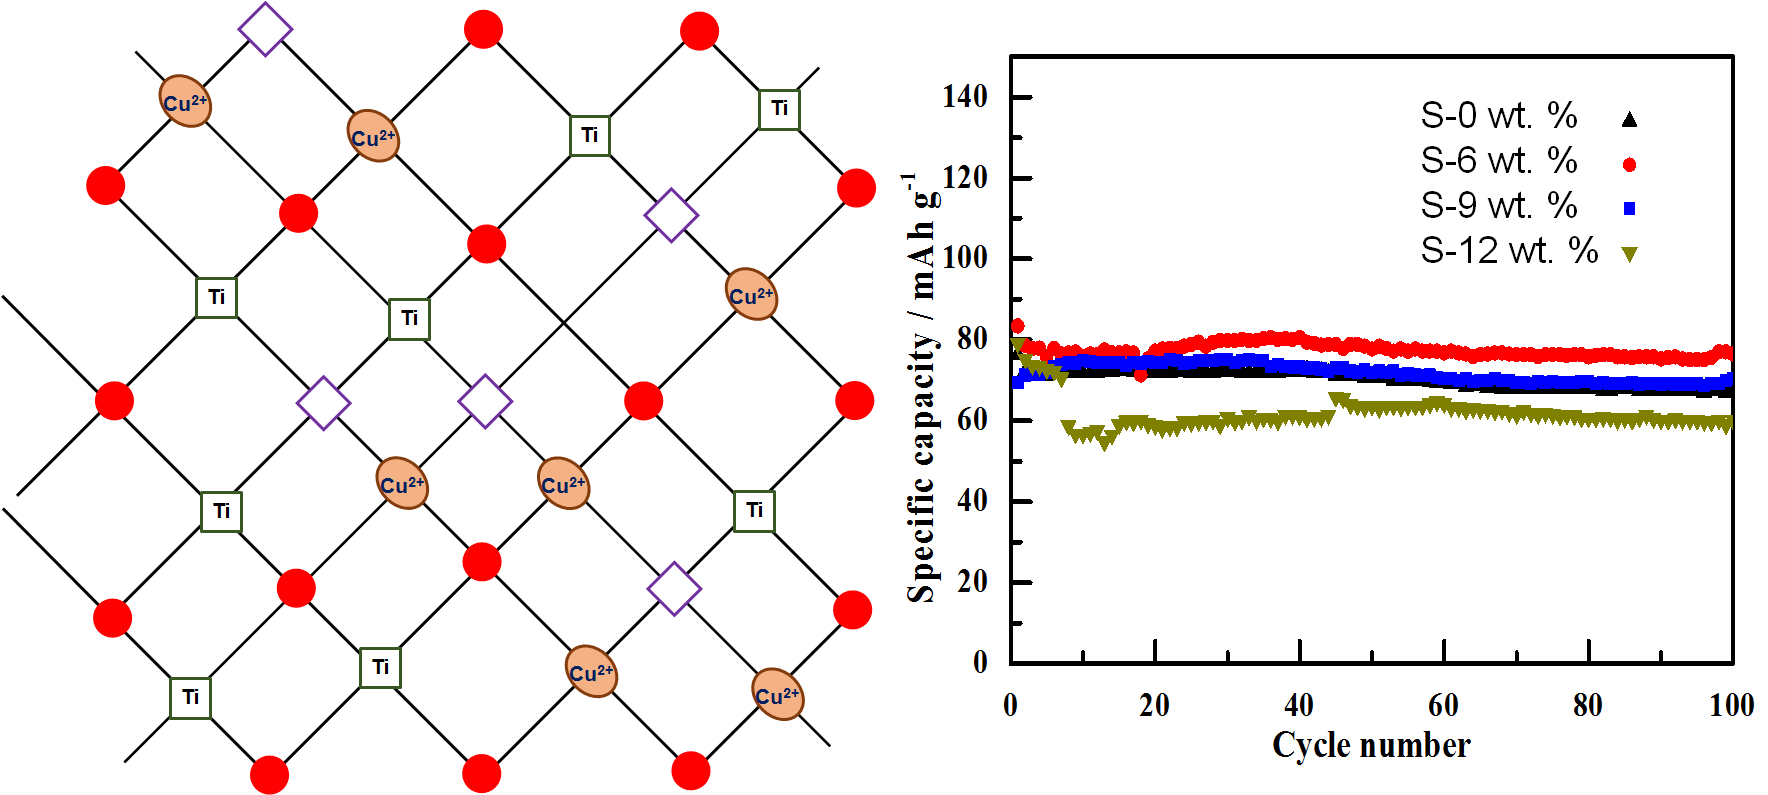 Enhanced Electrochemical Performance of Cu2+ doped TiO2 Nanoparticles for Lithium-ion Battery